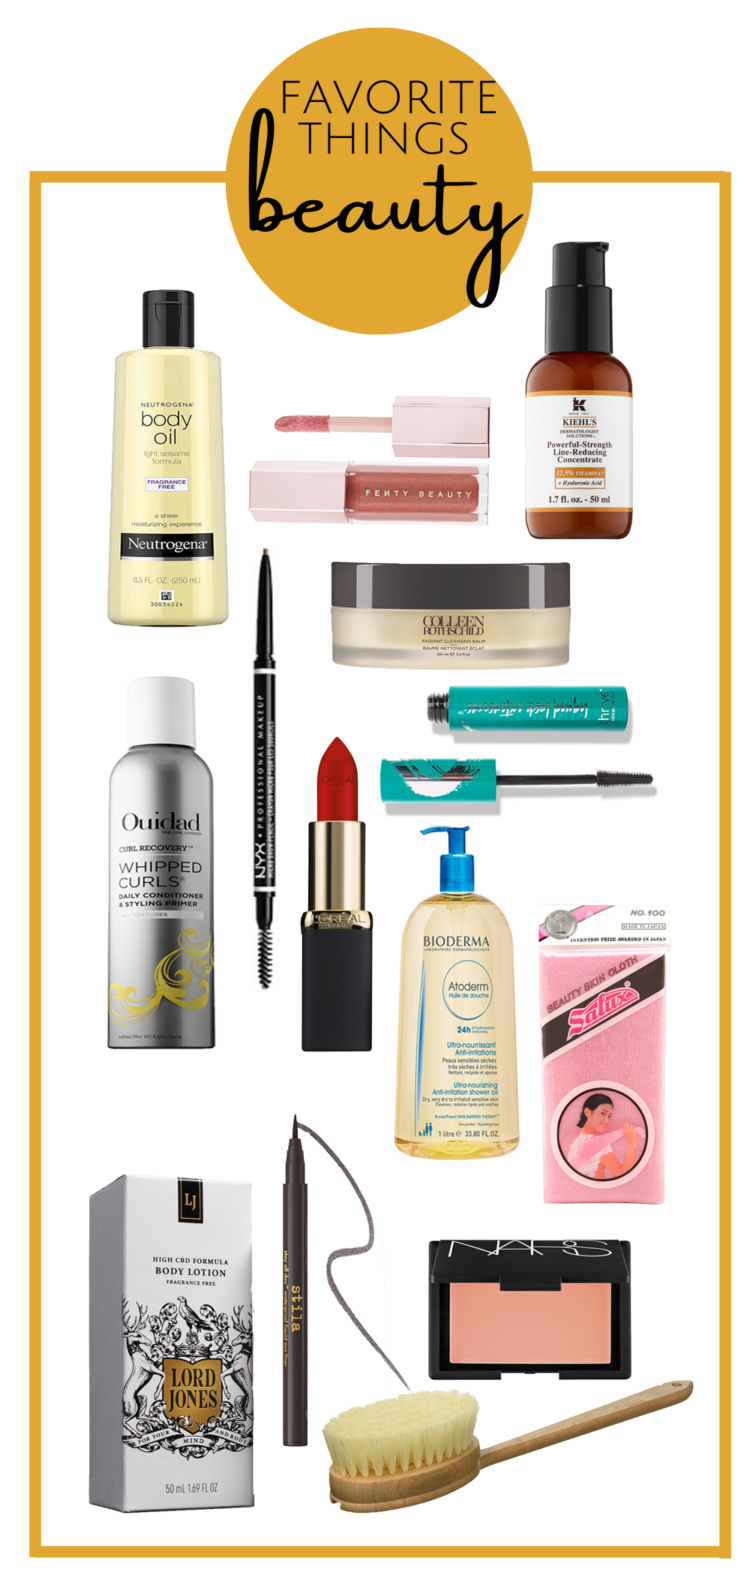 collage of beauty products mentioned in alison's favorite things